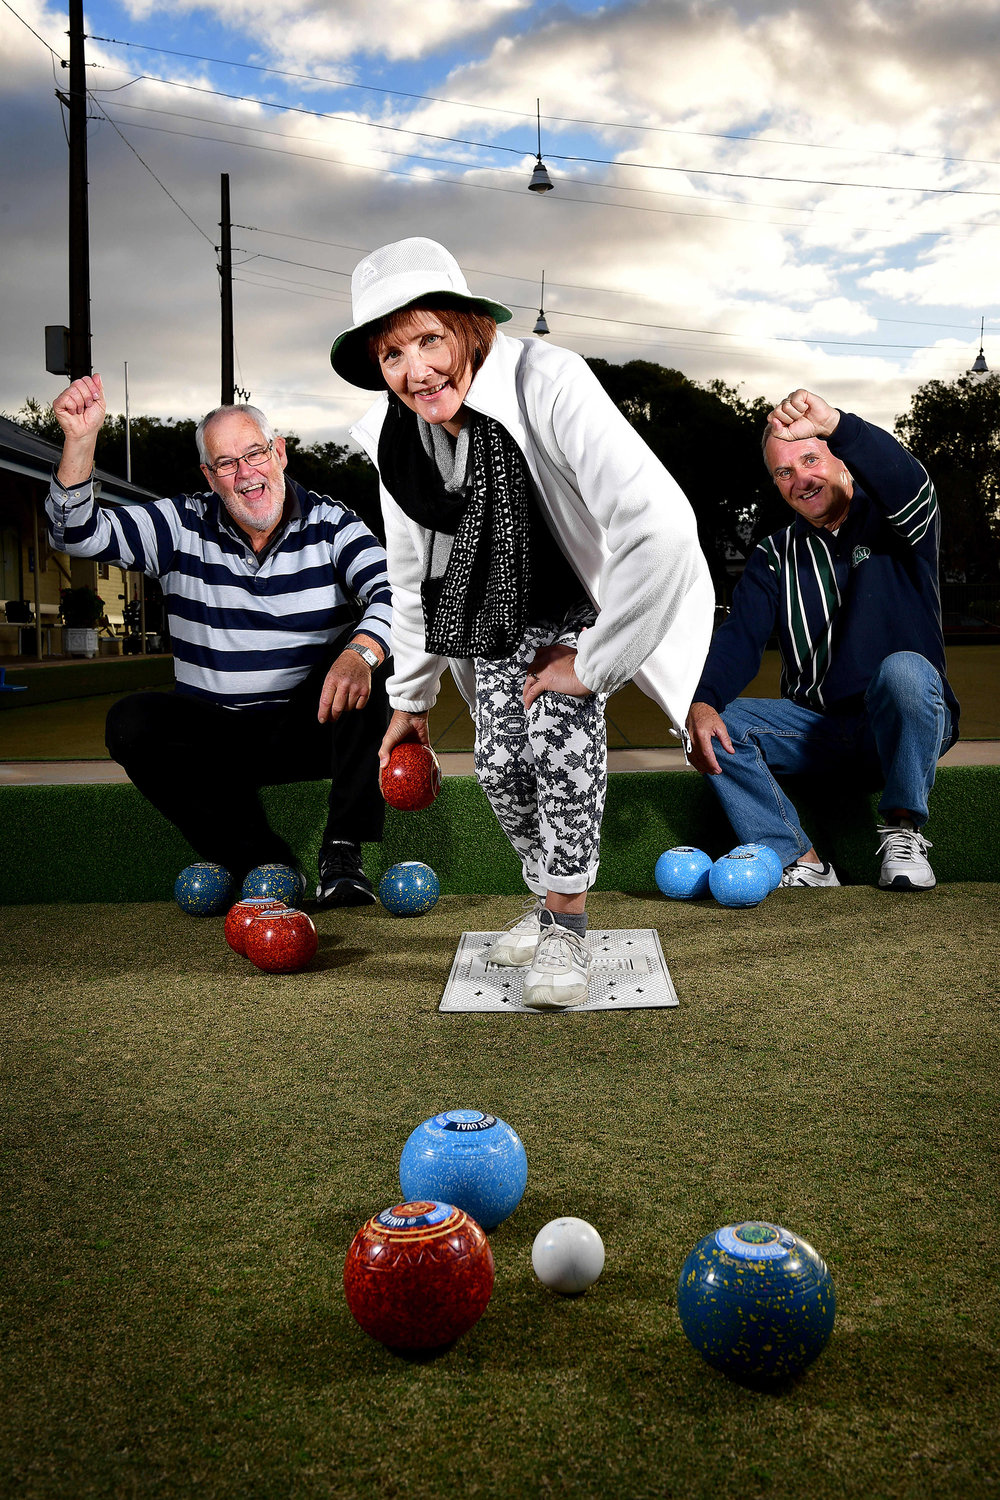 CHP_Export_177390569_Kym Pratt Tracey Kneebone 0418816482 & Grant Fisher enjoy a day on the green at.jpg